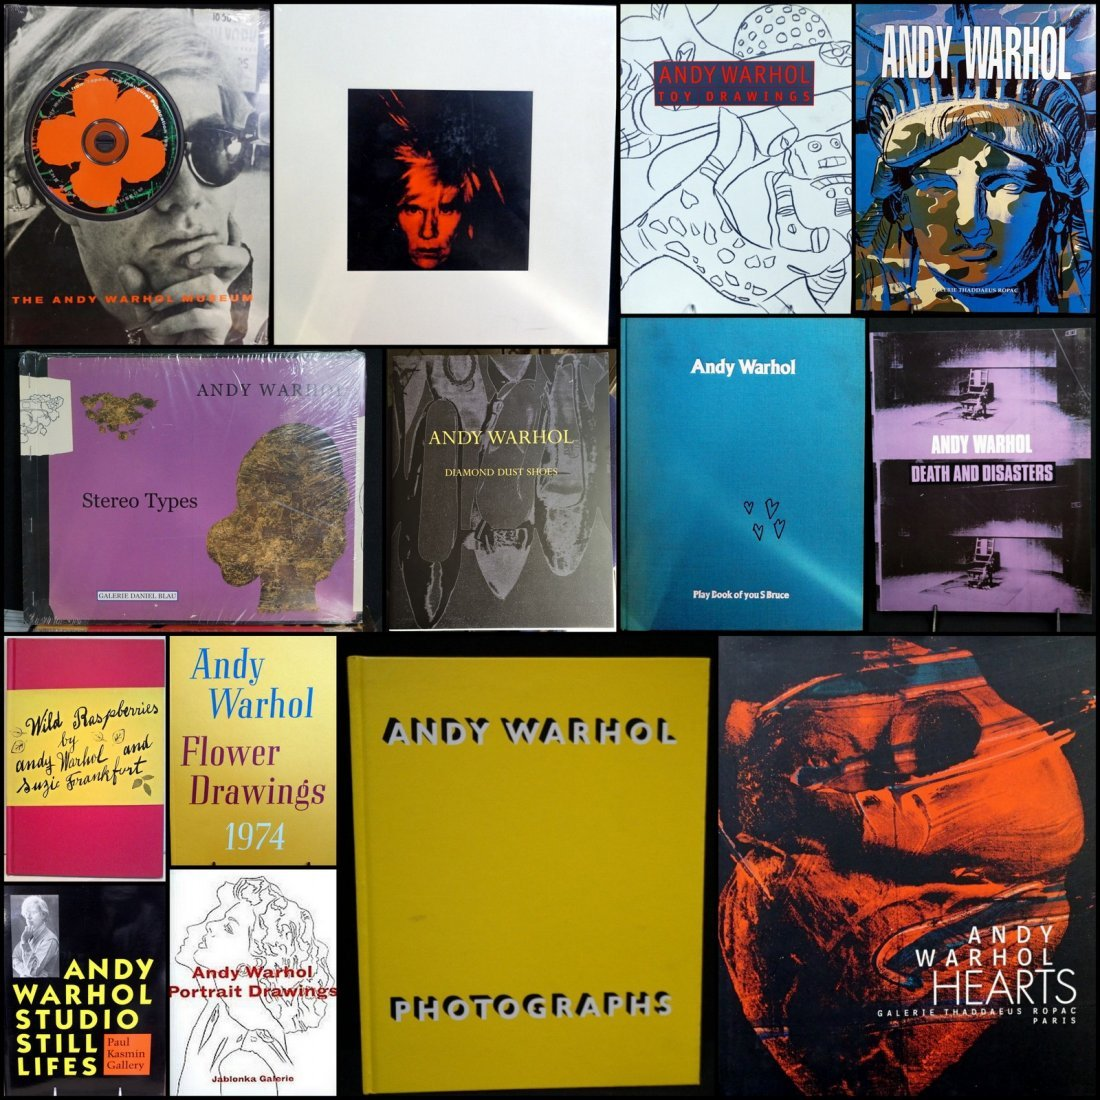 Andy Warhol Books and Exhibitions (14)